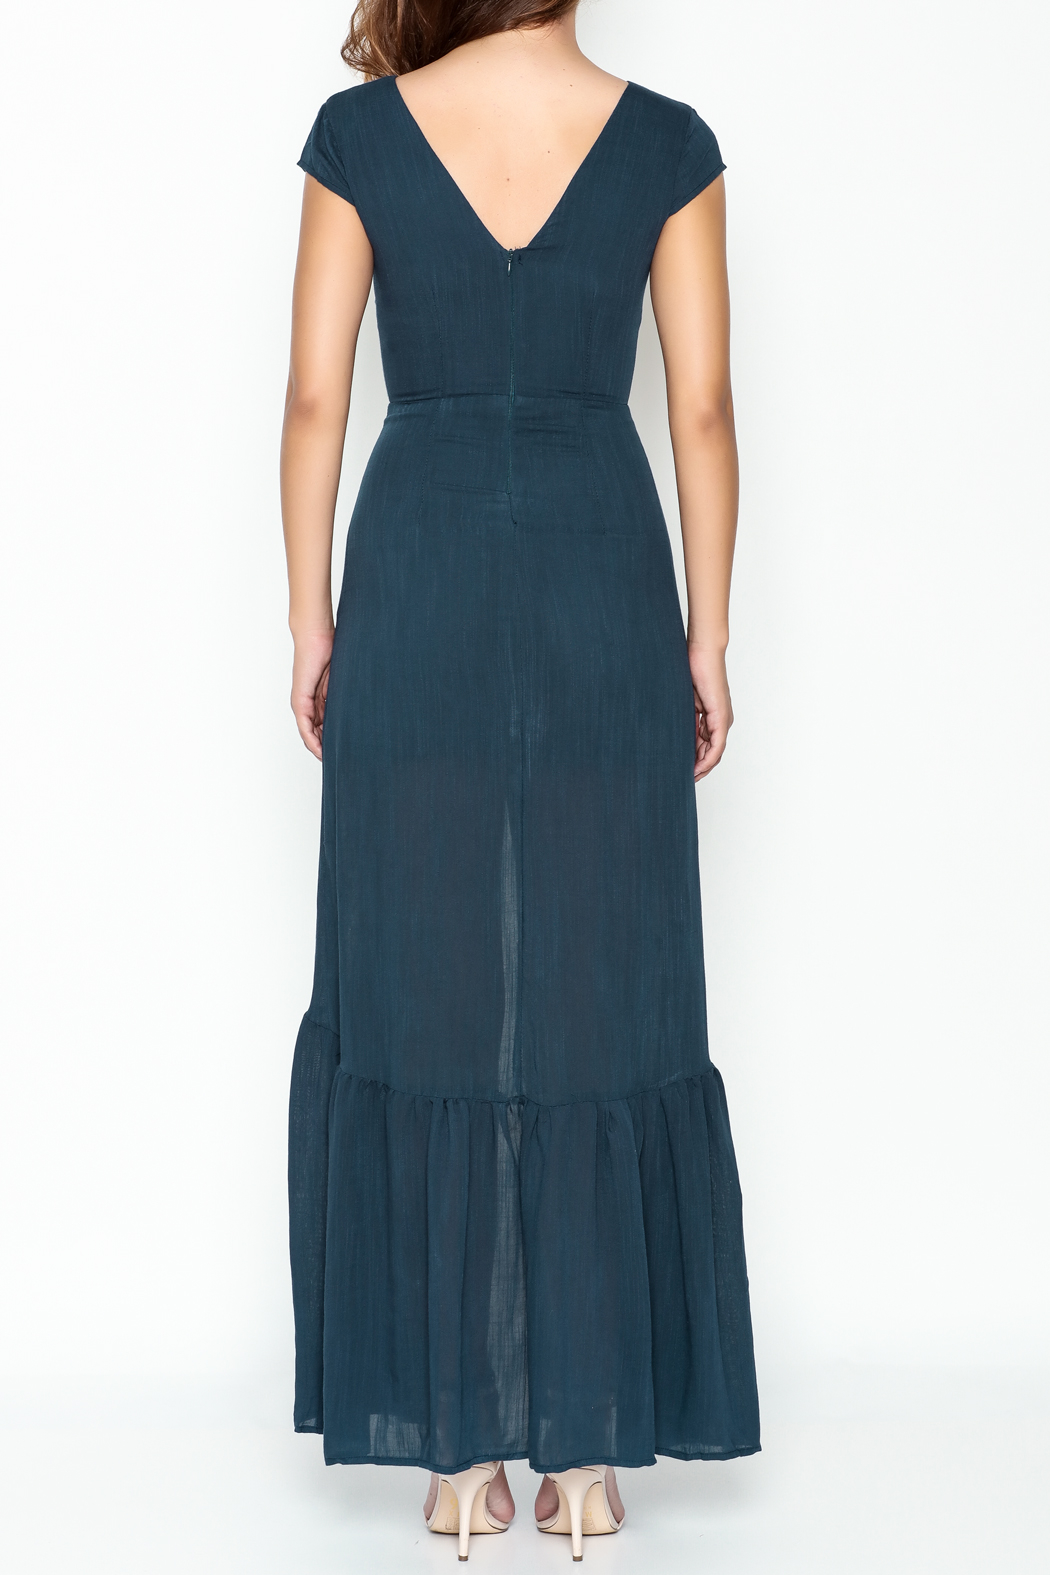 CALS Button Down Maxi Dress - Back Cropped Image